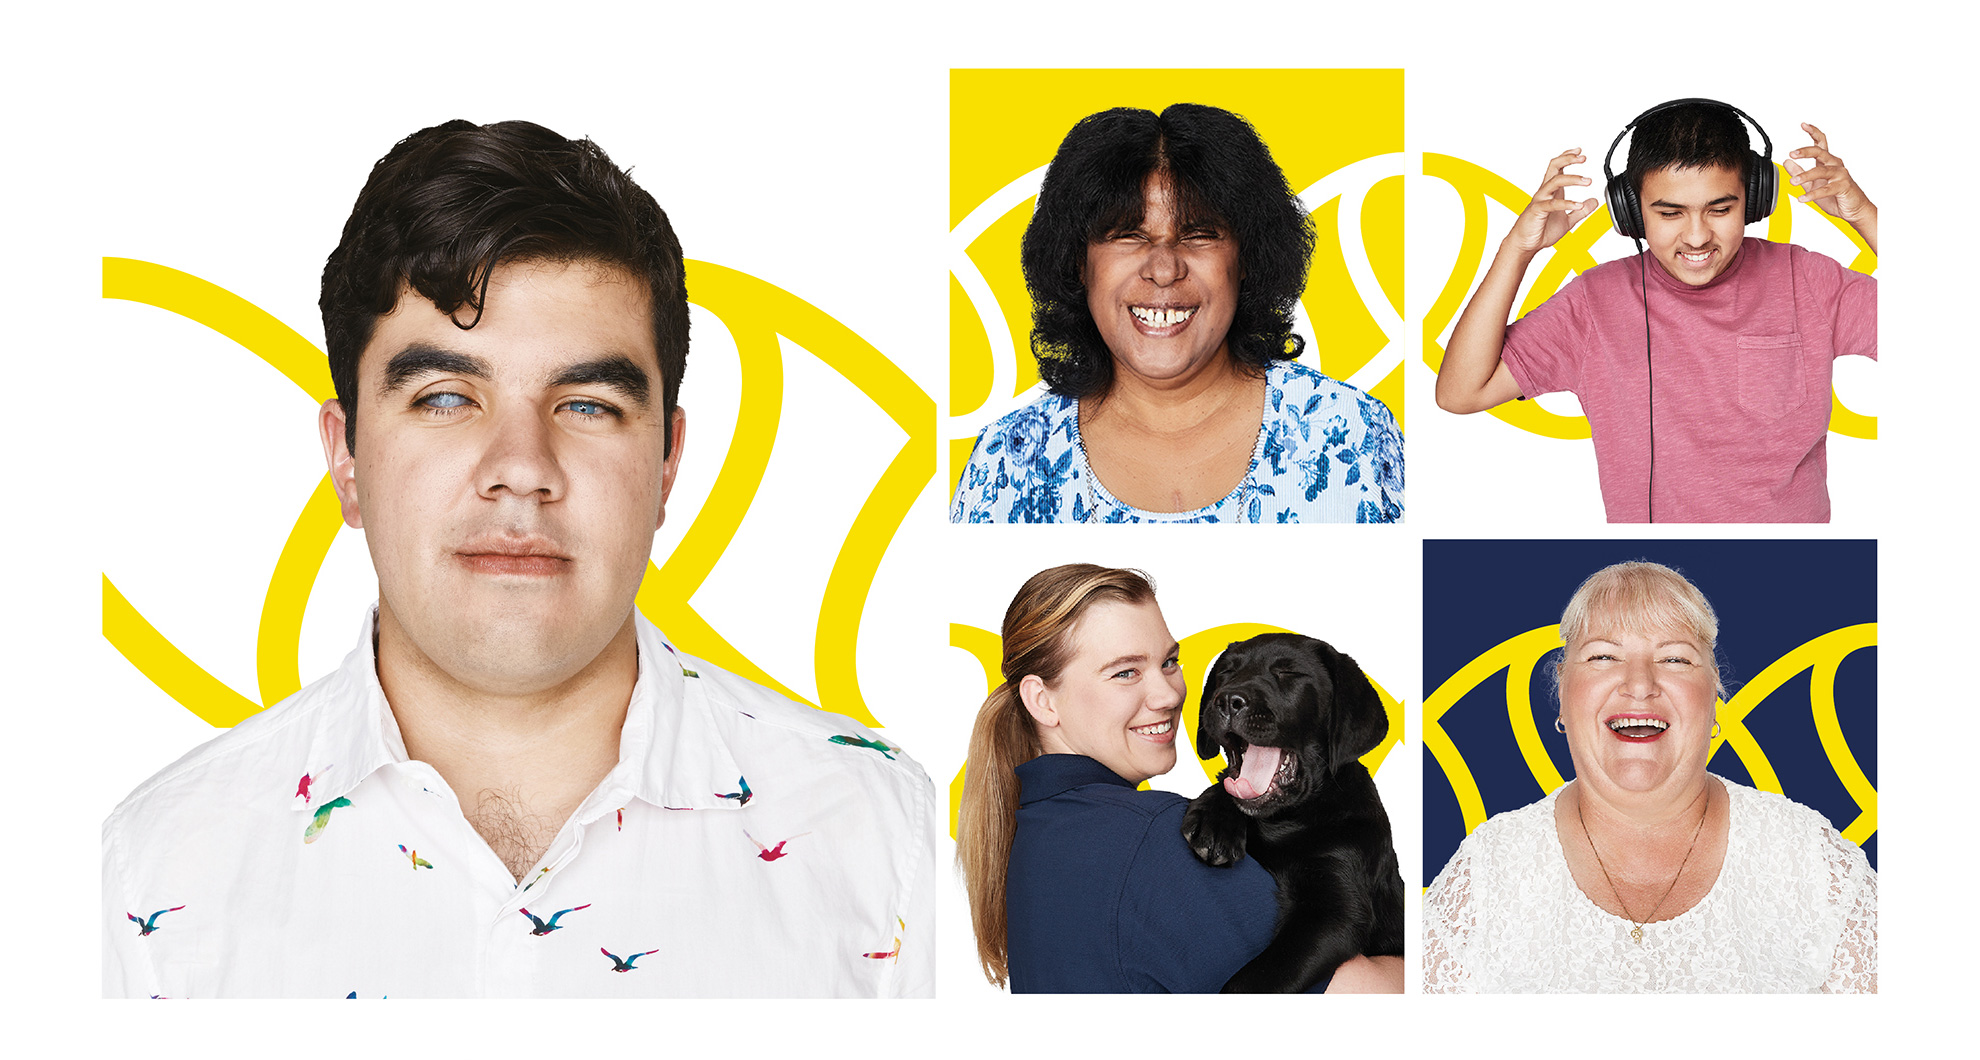 Collage of 5 photos, includes Santiago - client, Jayna - client, Amish - client, Debra - volunteer and Brit - staff member holding a black Labrador puppy.